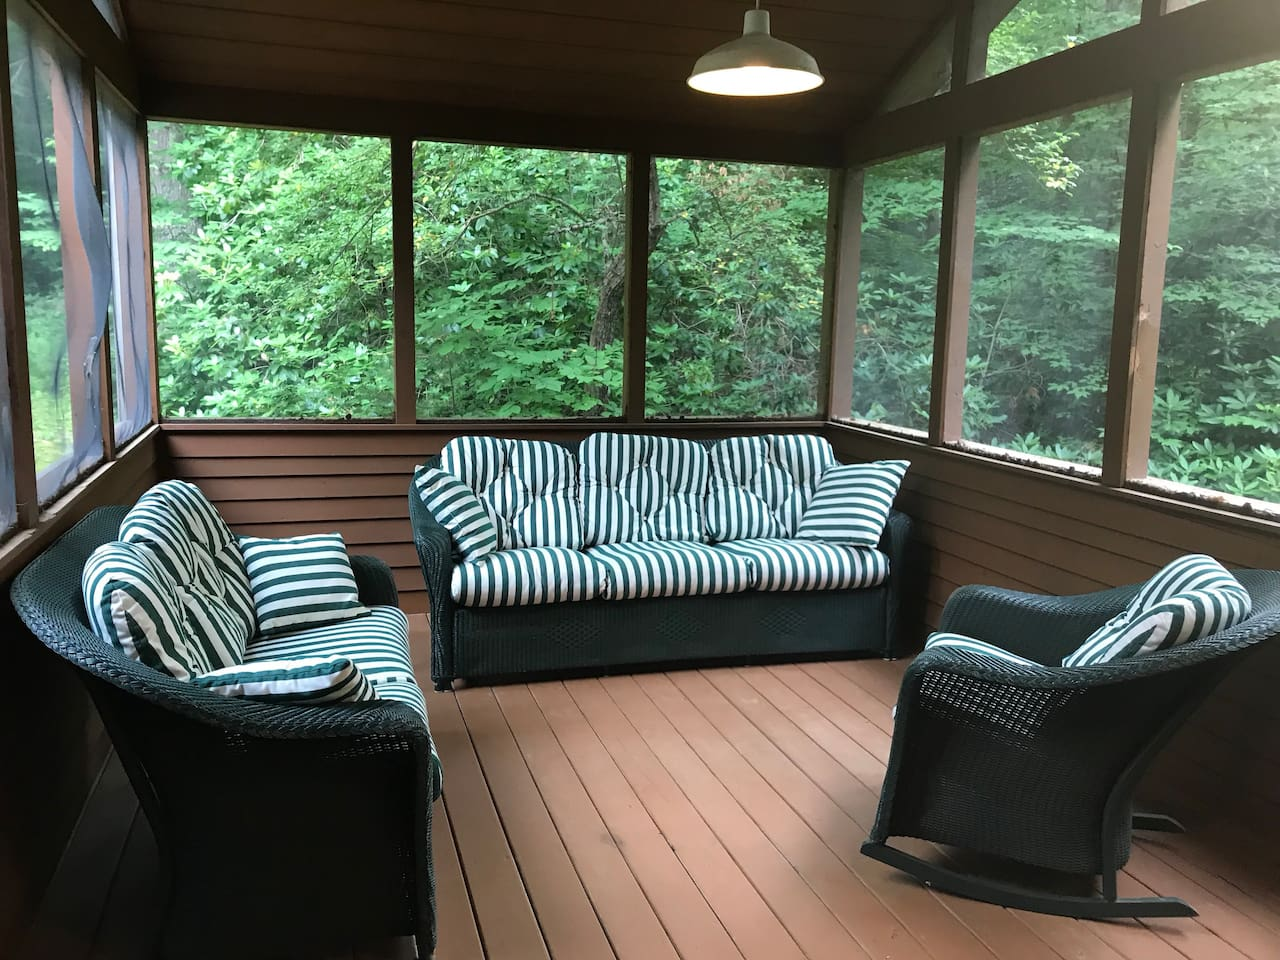 Screened porch with comfy couches and rocking chair.